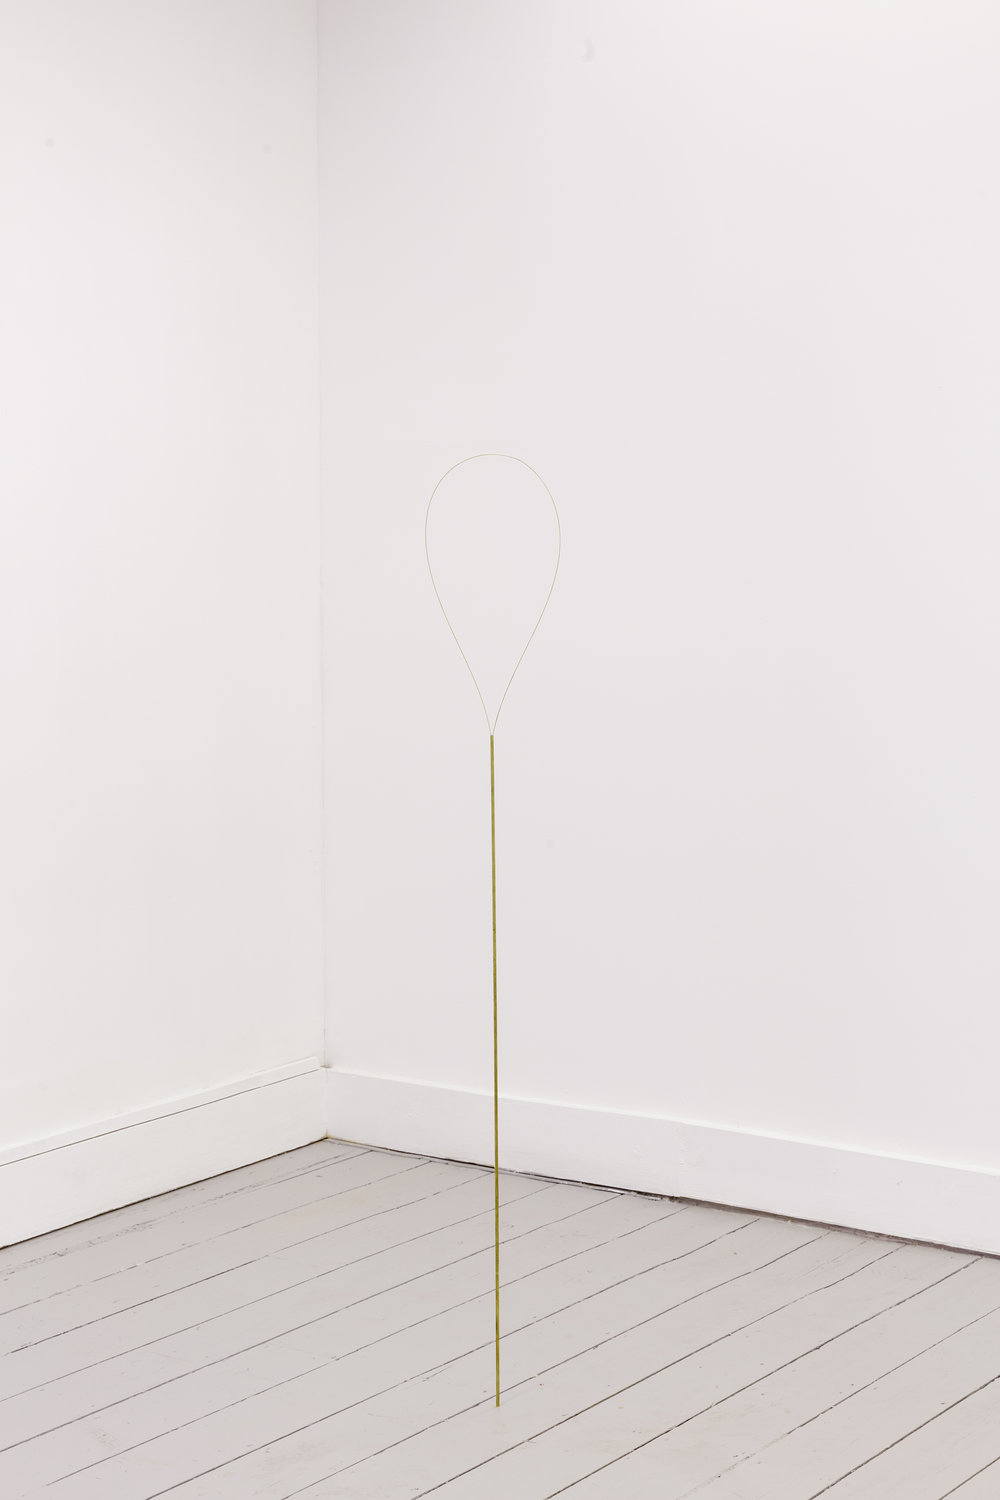 Joana Escoval, I forgot to go to school yesterday (discharged), 2016. Brass. Photo Tim Bowditch.